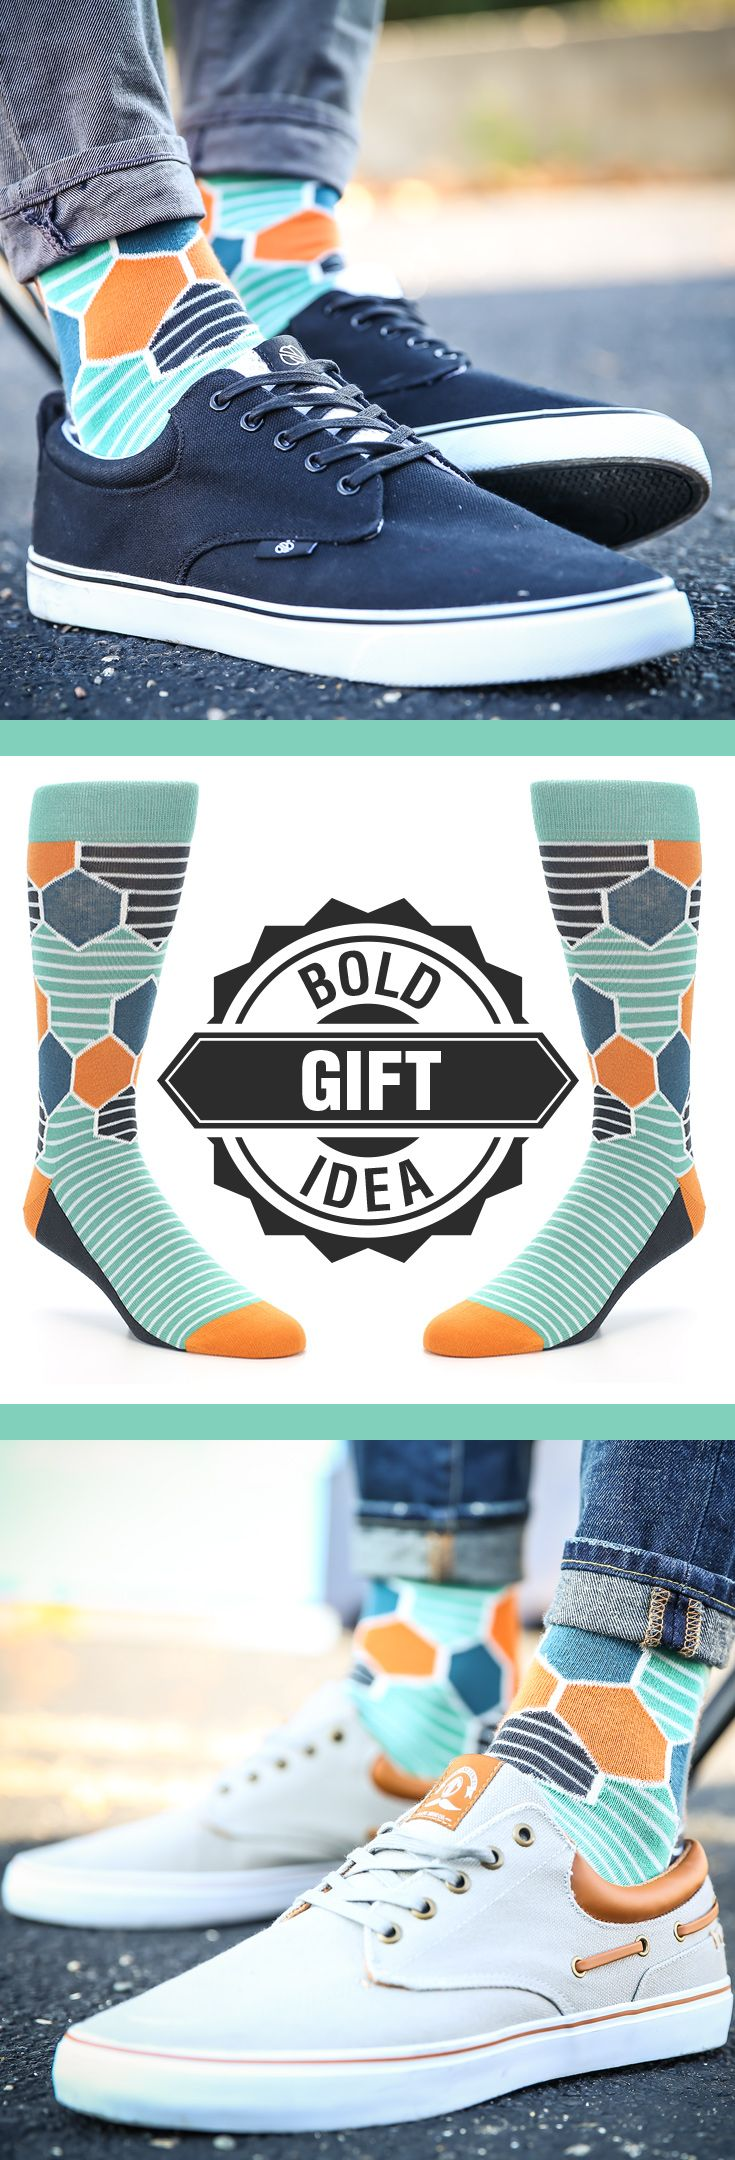 One of our most unique designs from this past year, the HexaStripes offer a seamless transition from stripes on the foot to hexagons on the ankle. Complementary colors of teal and orange alternate to give the socks a splash of bold while still staying stylish. Check out these socks and more.